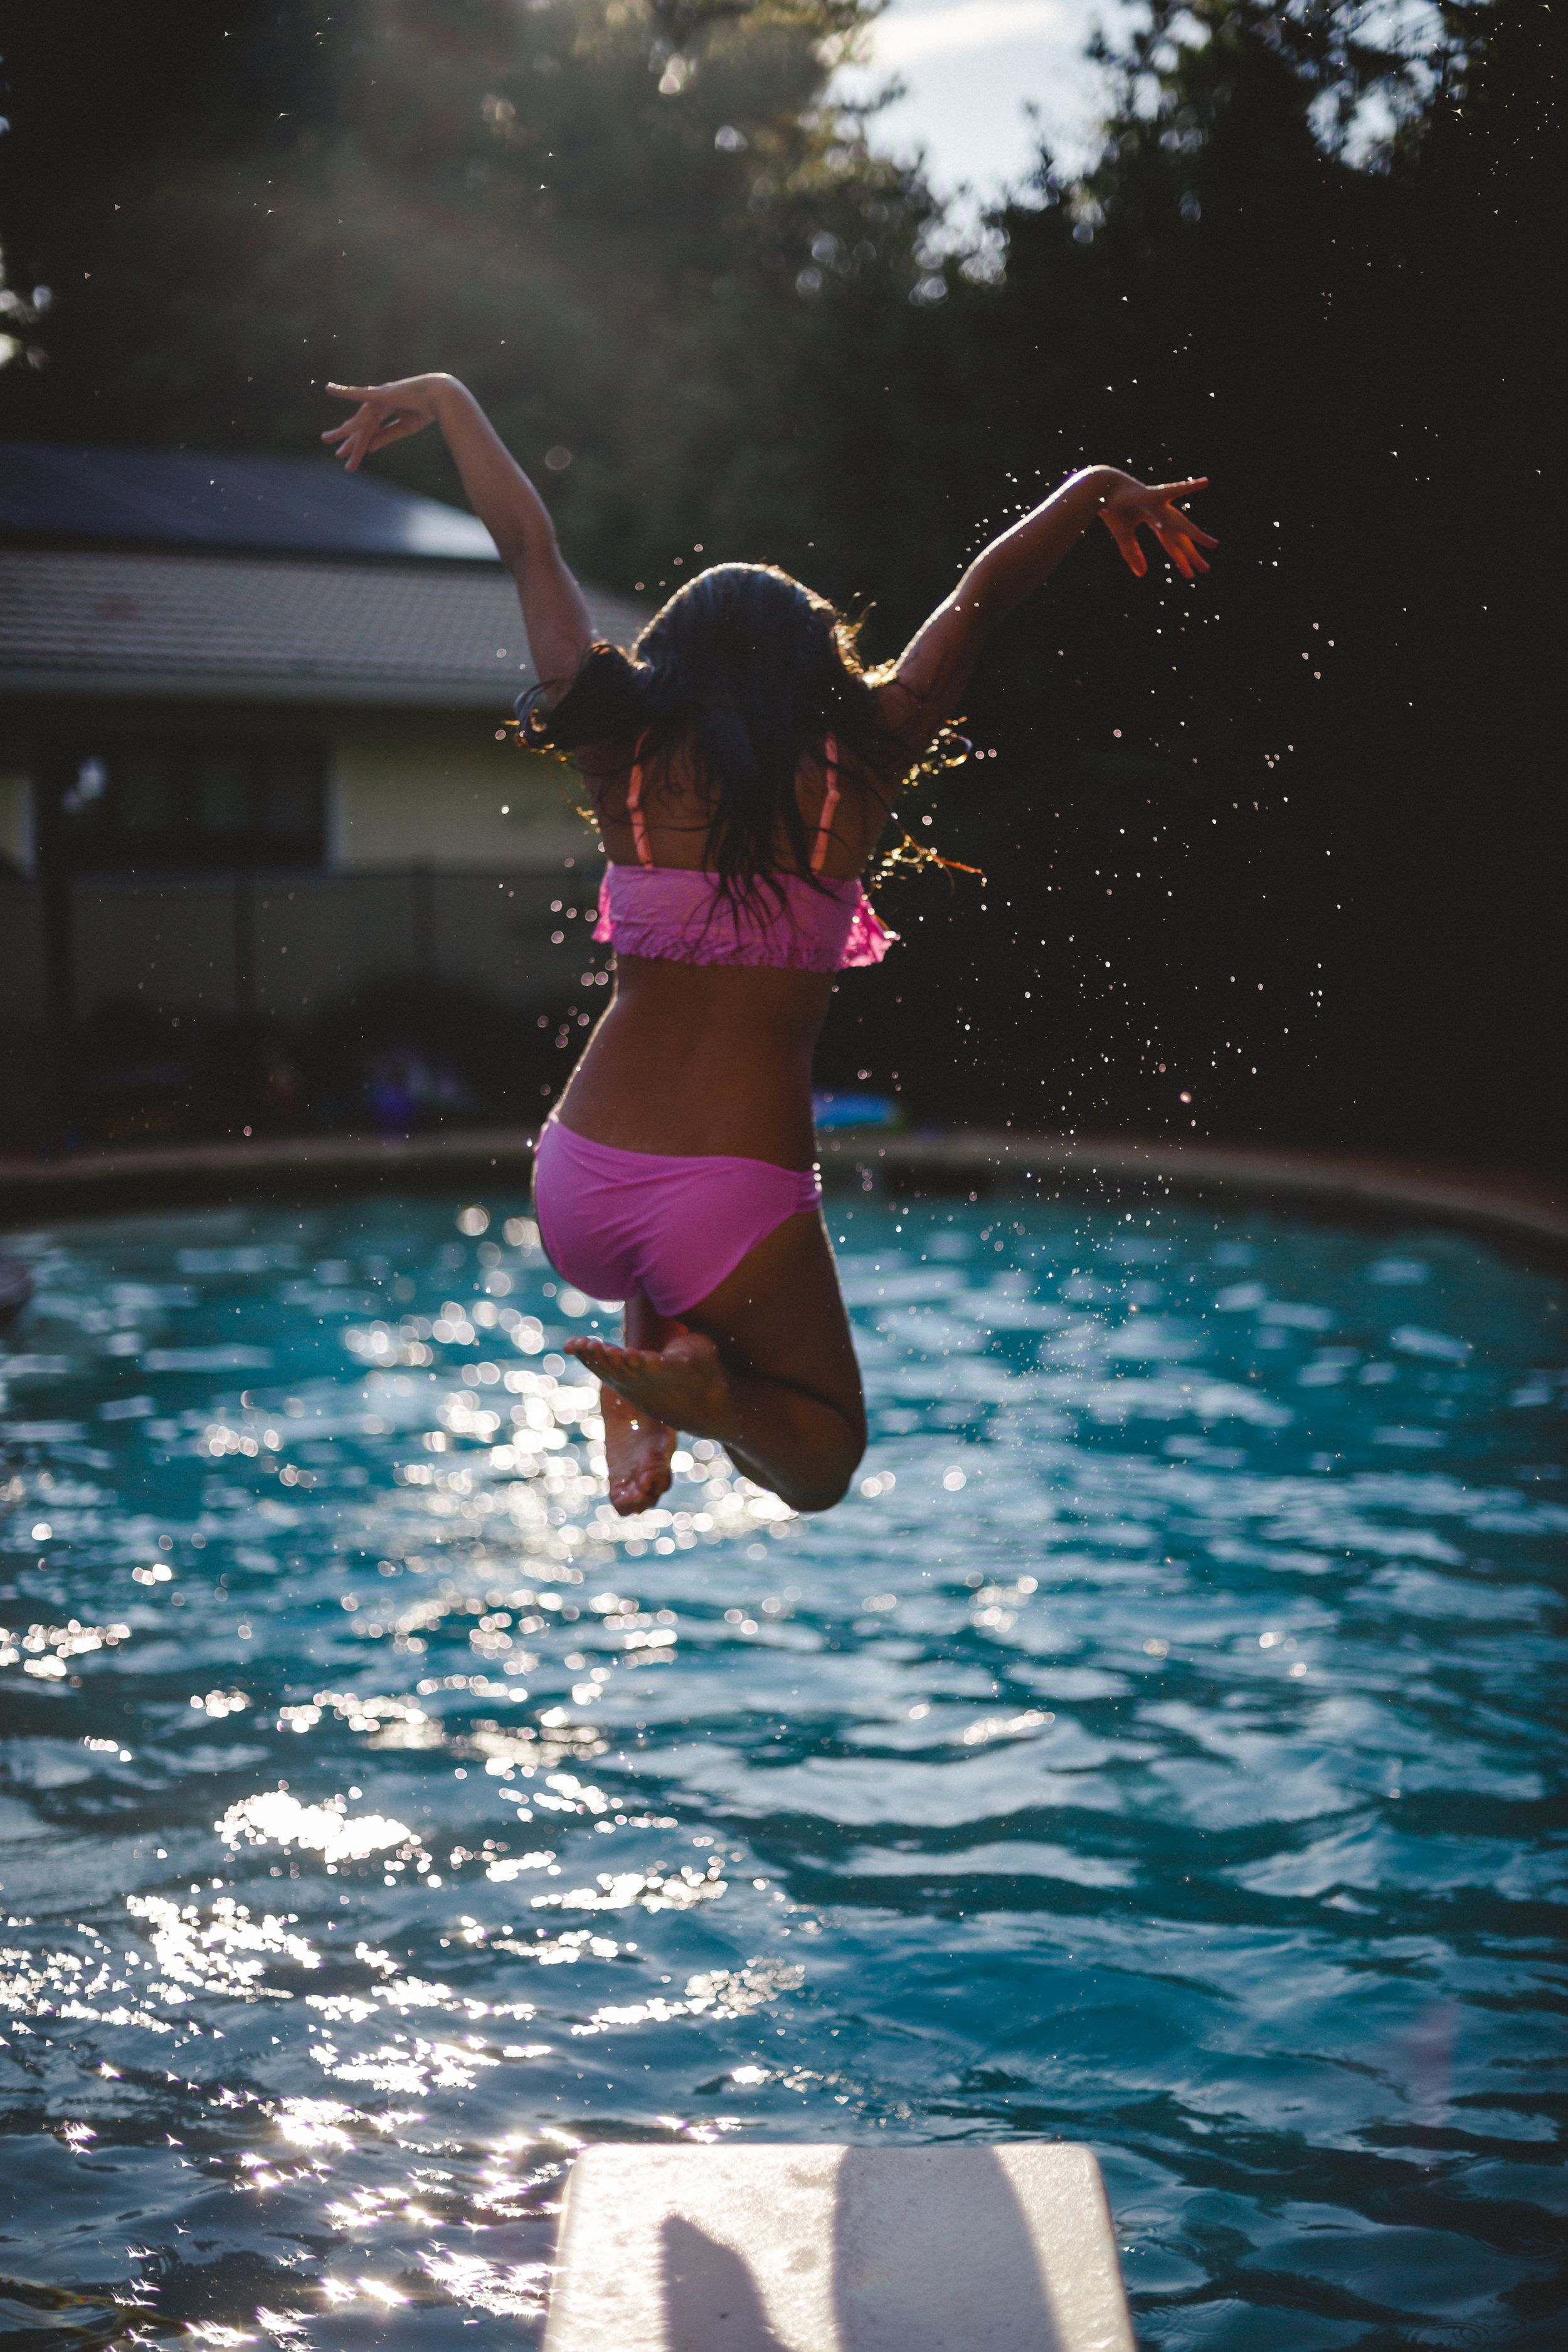 Girl jumping into a pool.